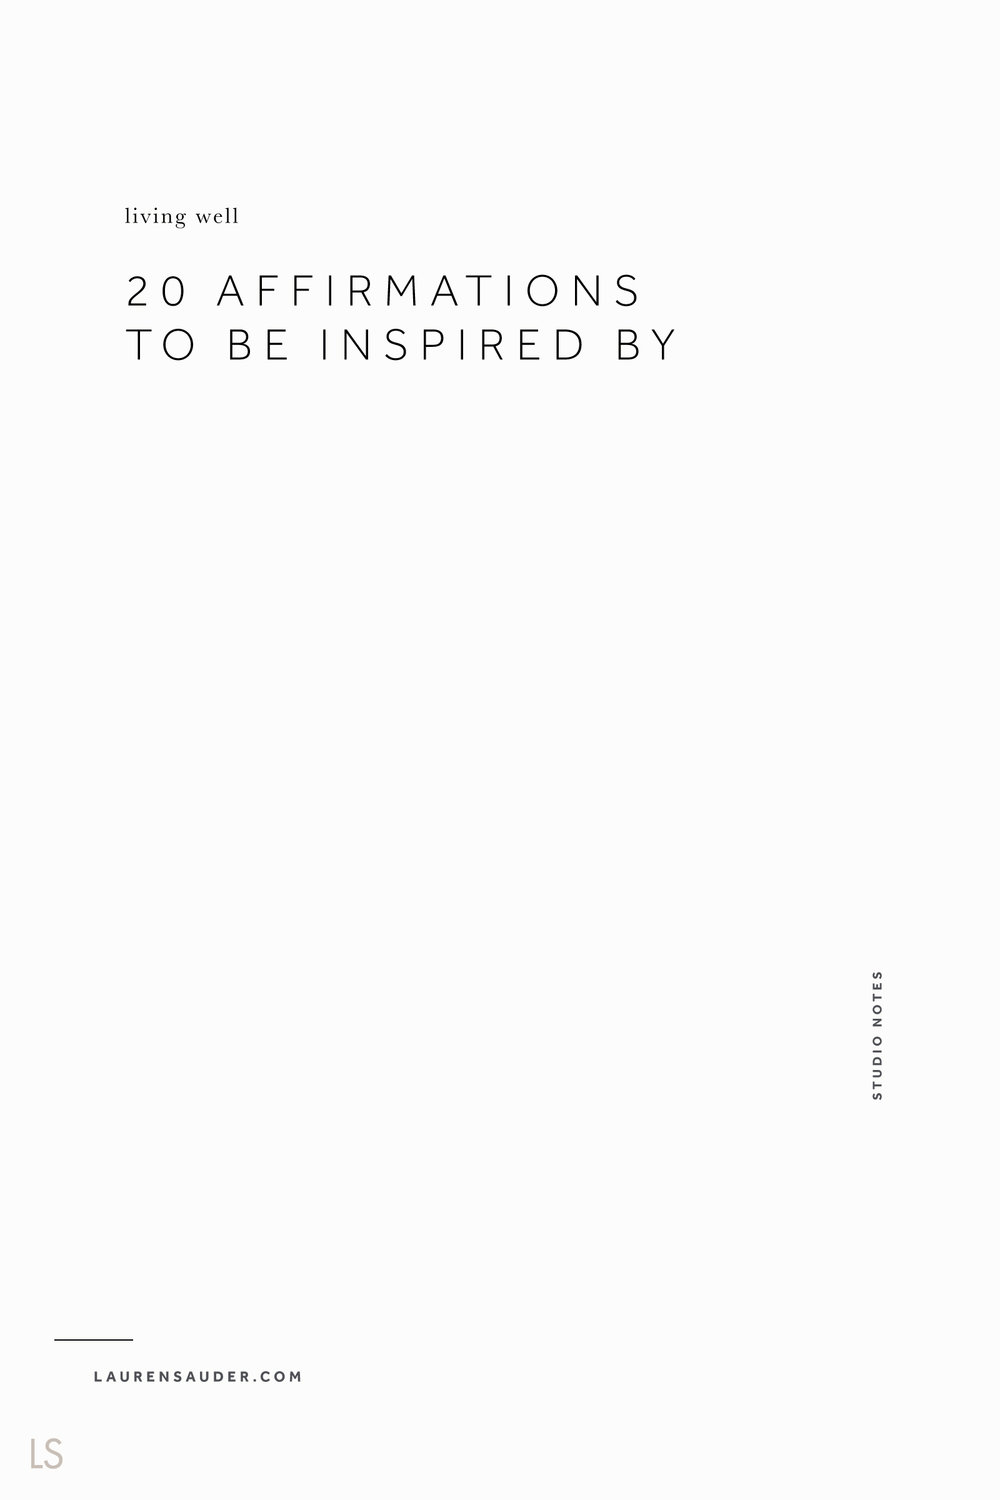 20 Affirmations to be Inspired by #affirmations #routines #dailyroutines affirmations for women, affirmations for creatives, affirmations positive, affirmations quotes, affirmation ideas